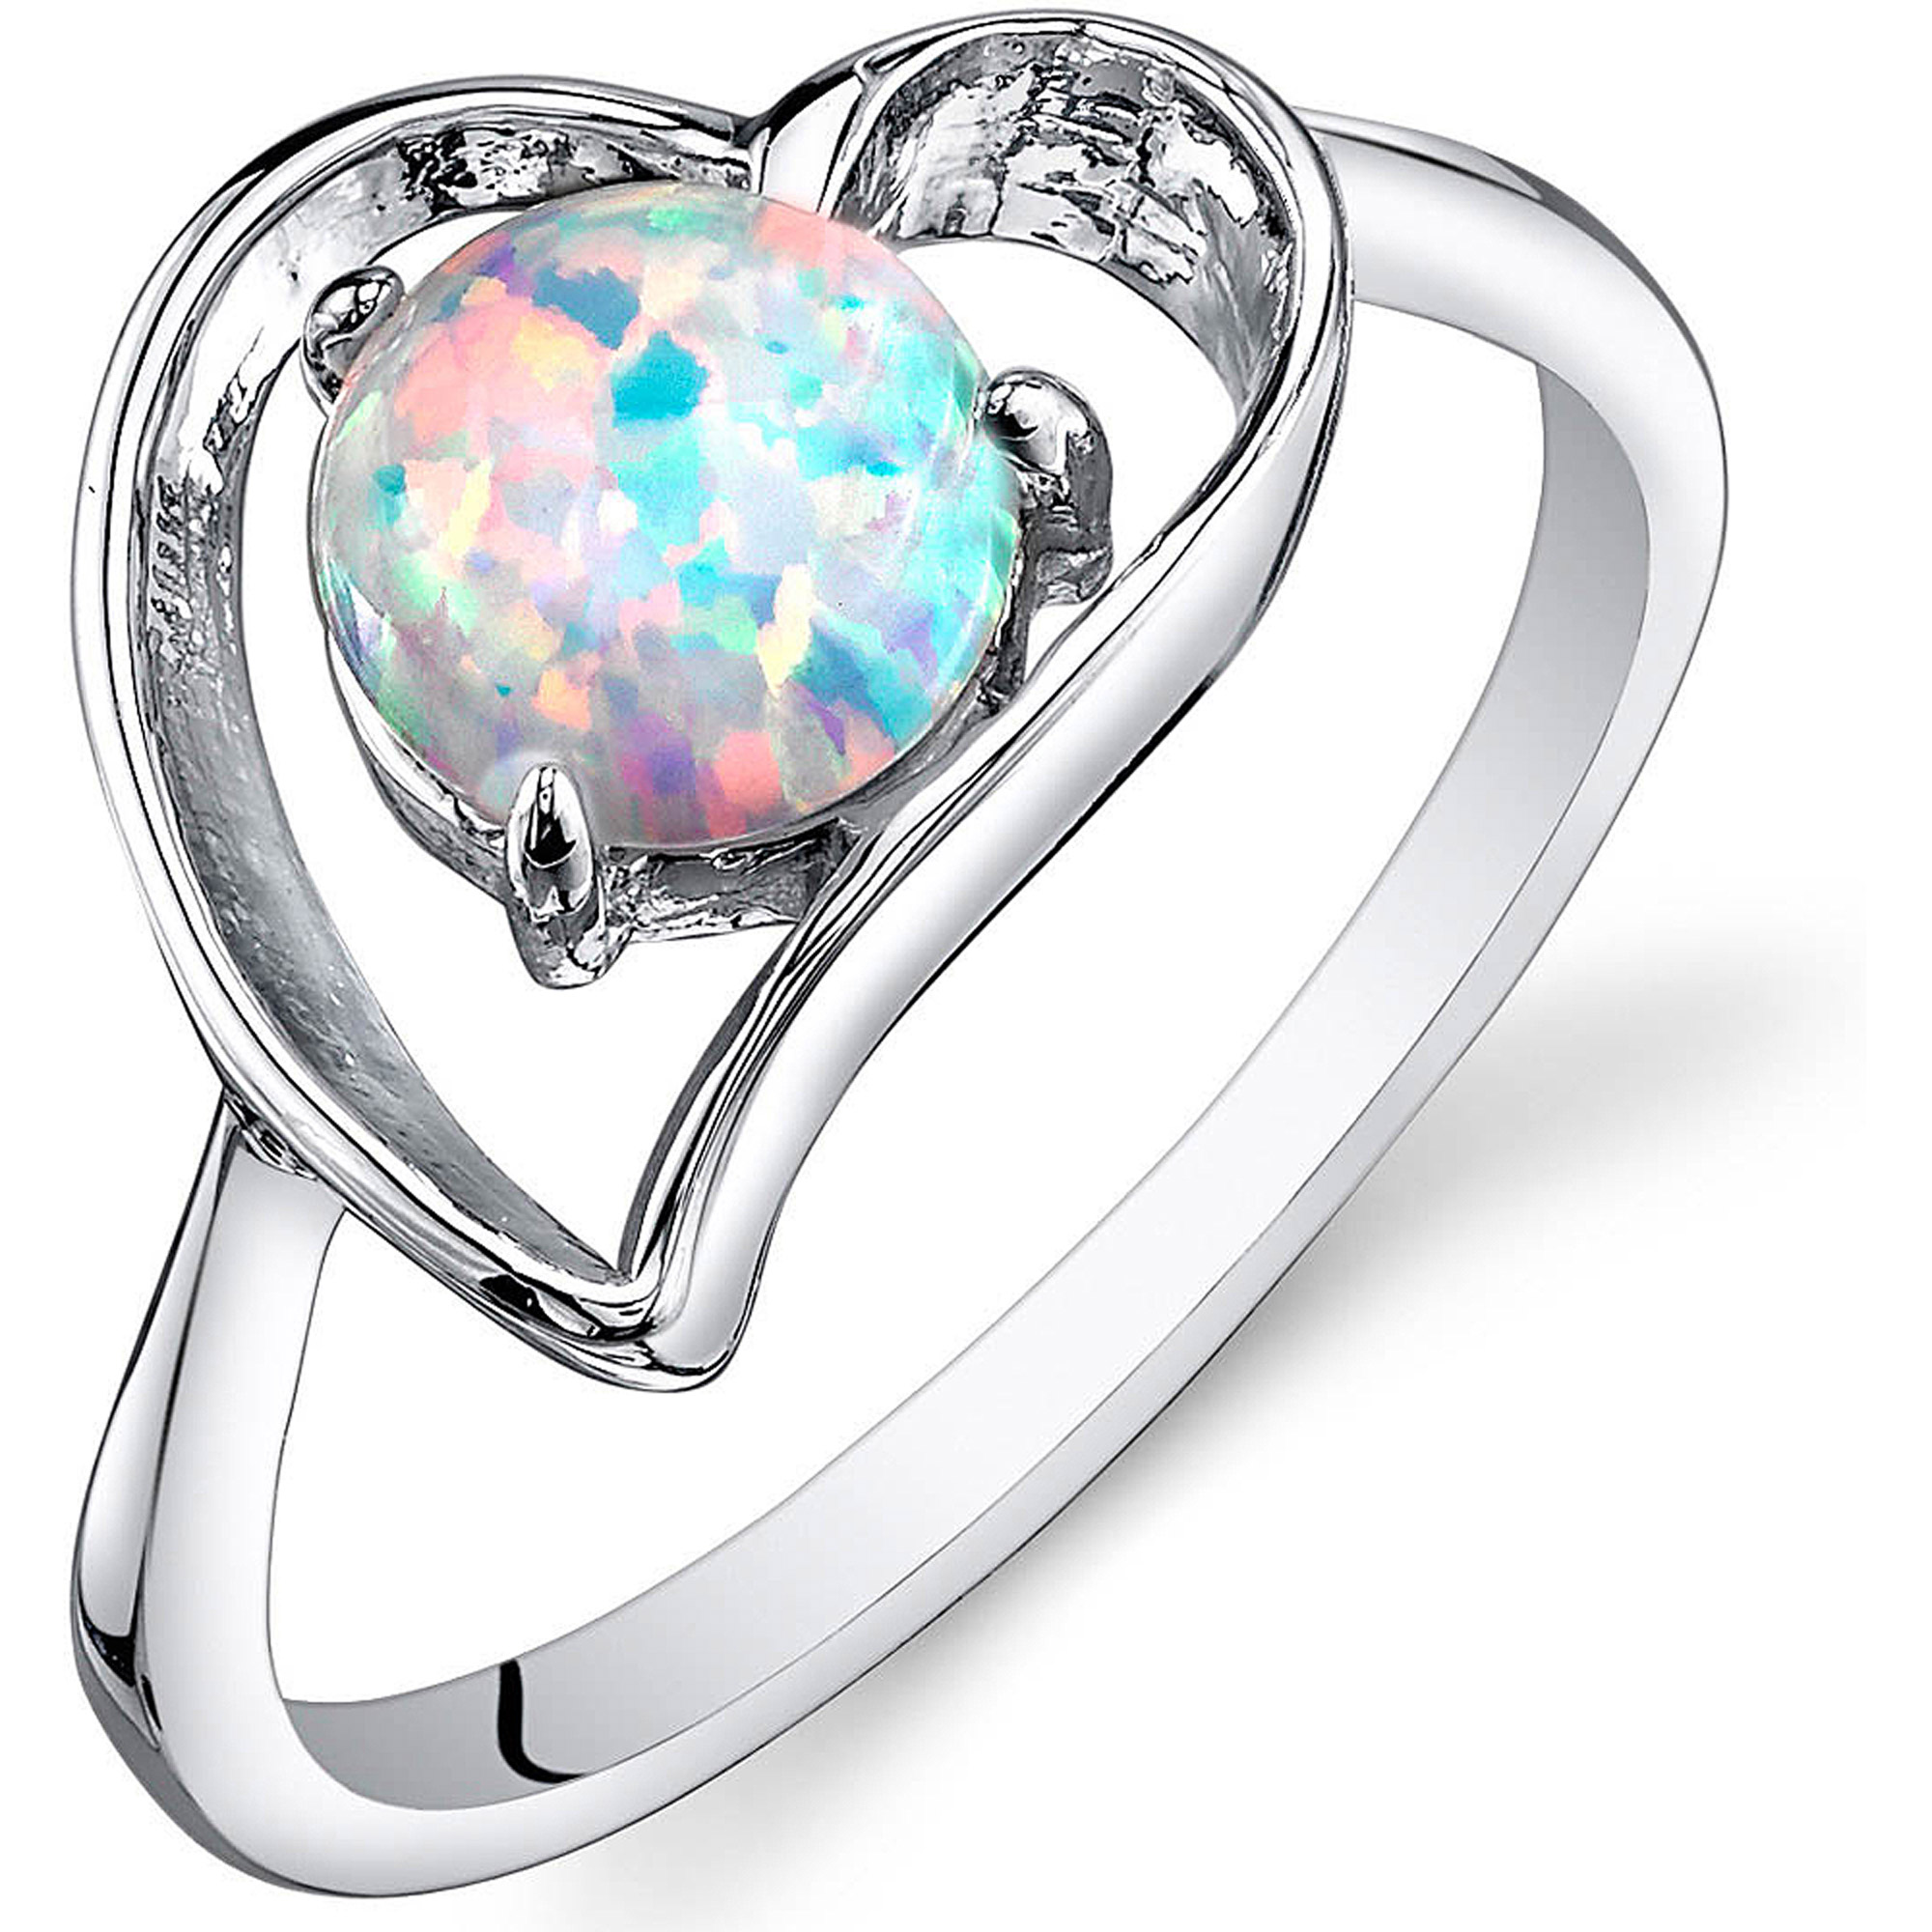 Oravo 0.75 Carat T.G.W. Heart-Shape Created Opal Rhodium over Sterling Silver Ring